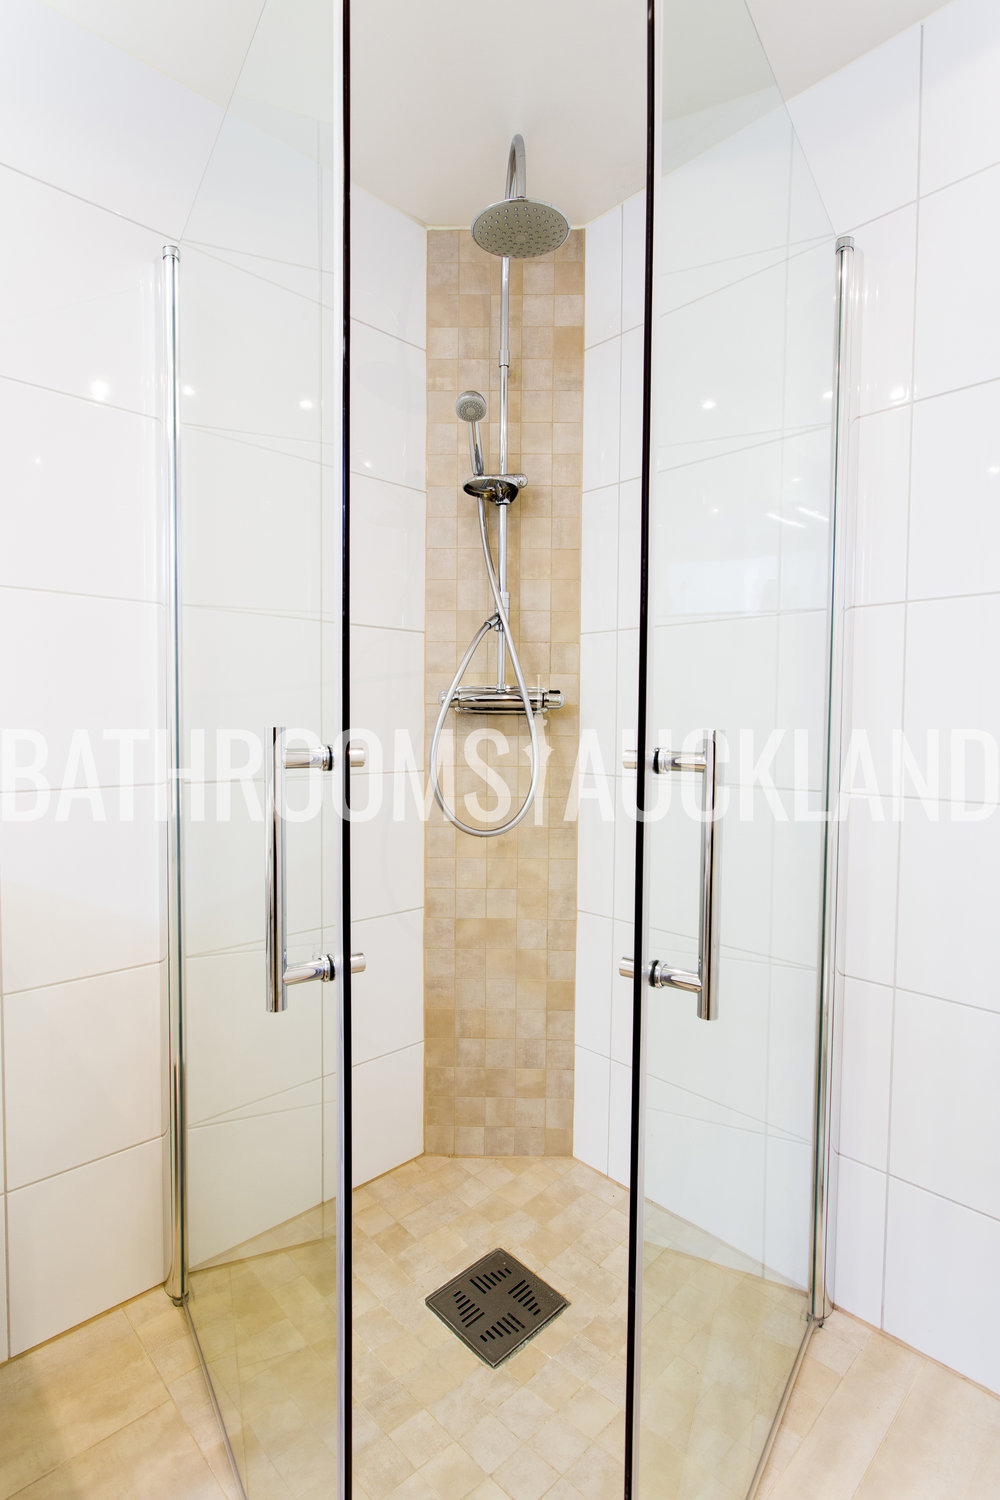 Bathrooms Auckland Renovation_Bathrooms In Auckland_Bathroom Renovation_Bathrooms Renovation_Bathrooms Auckland Renovation .1221.jpg